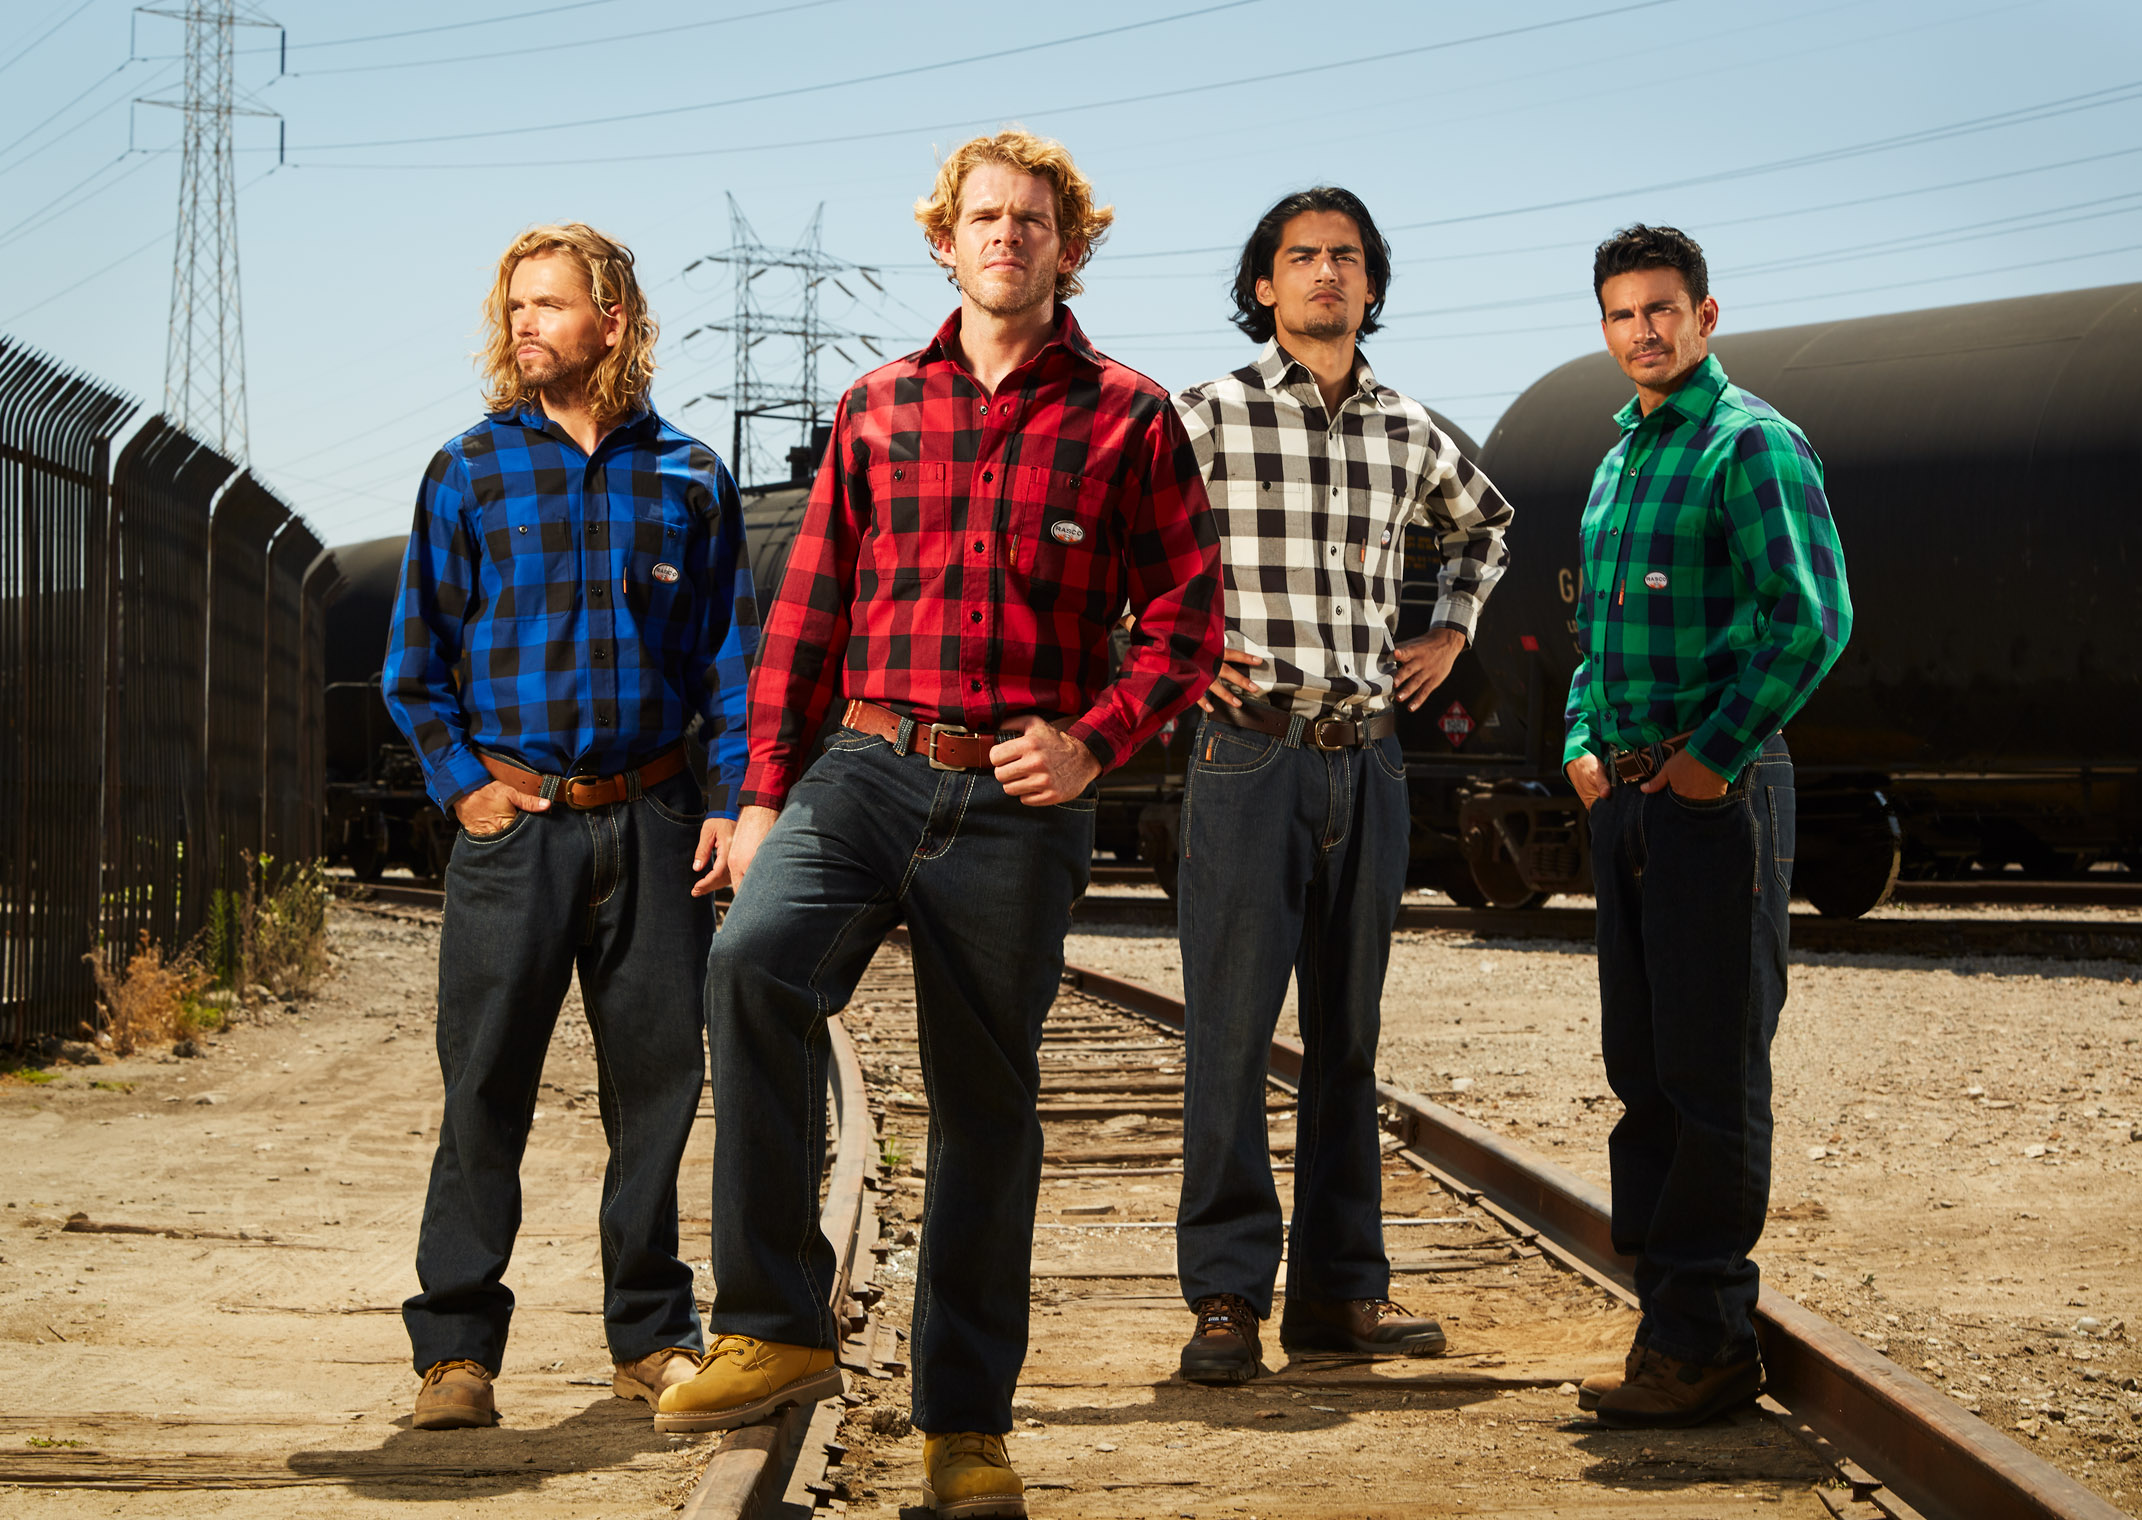 four workers in plaid shirts ready to take on work - tough guys workwear photoshoot LA New York